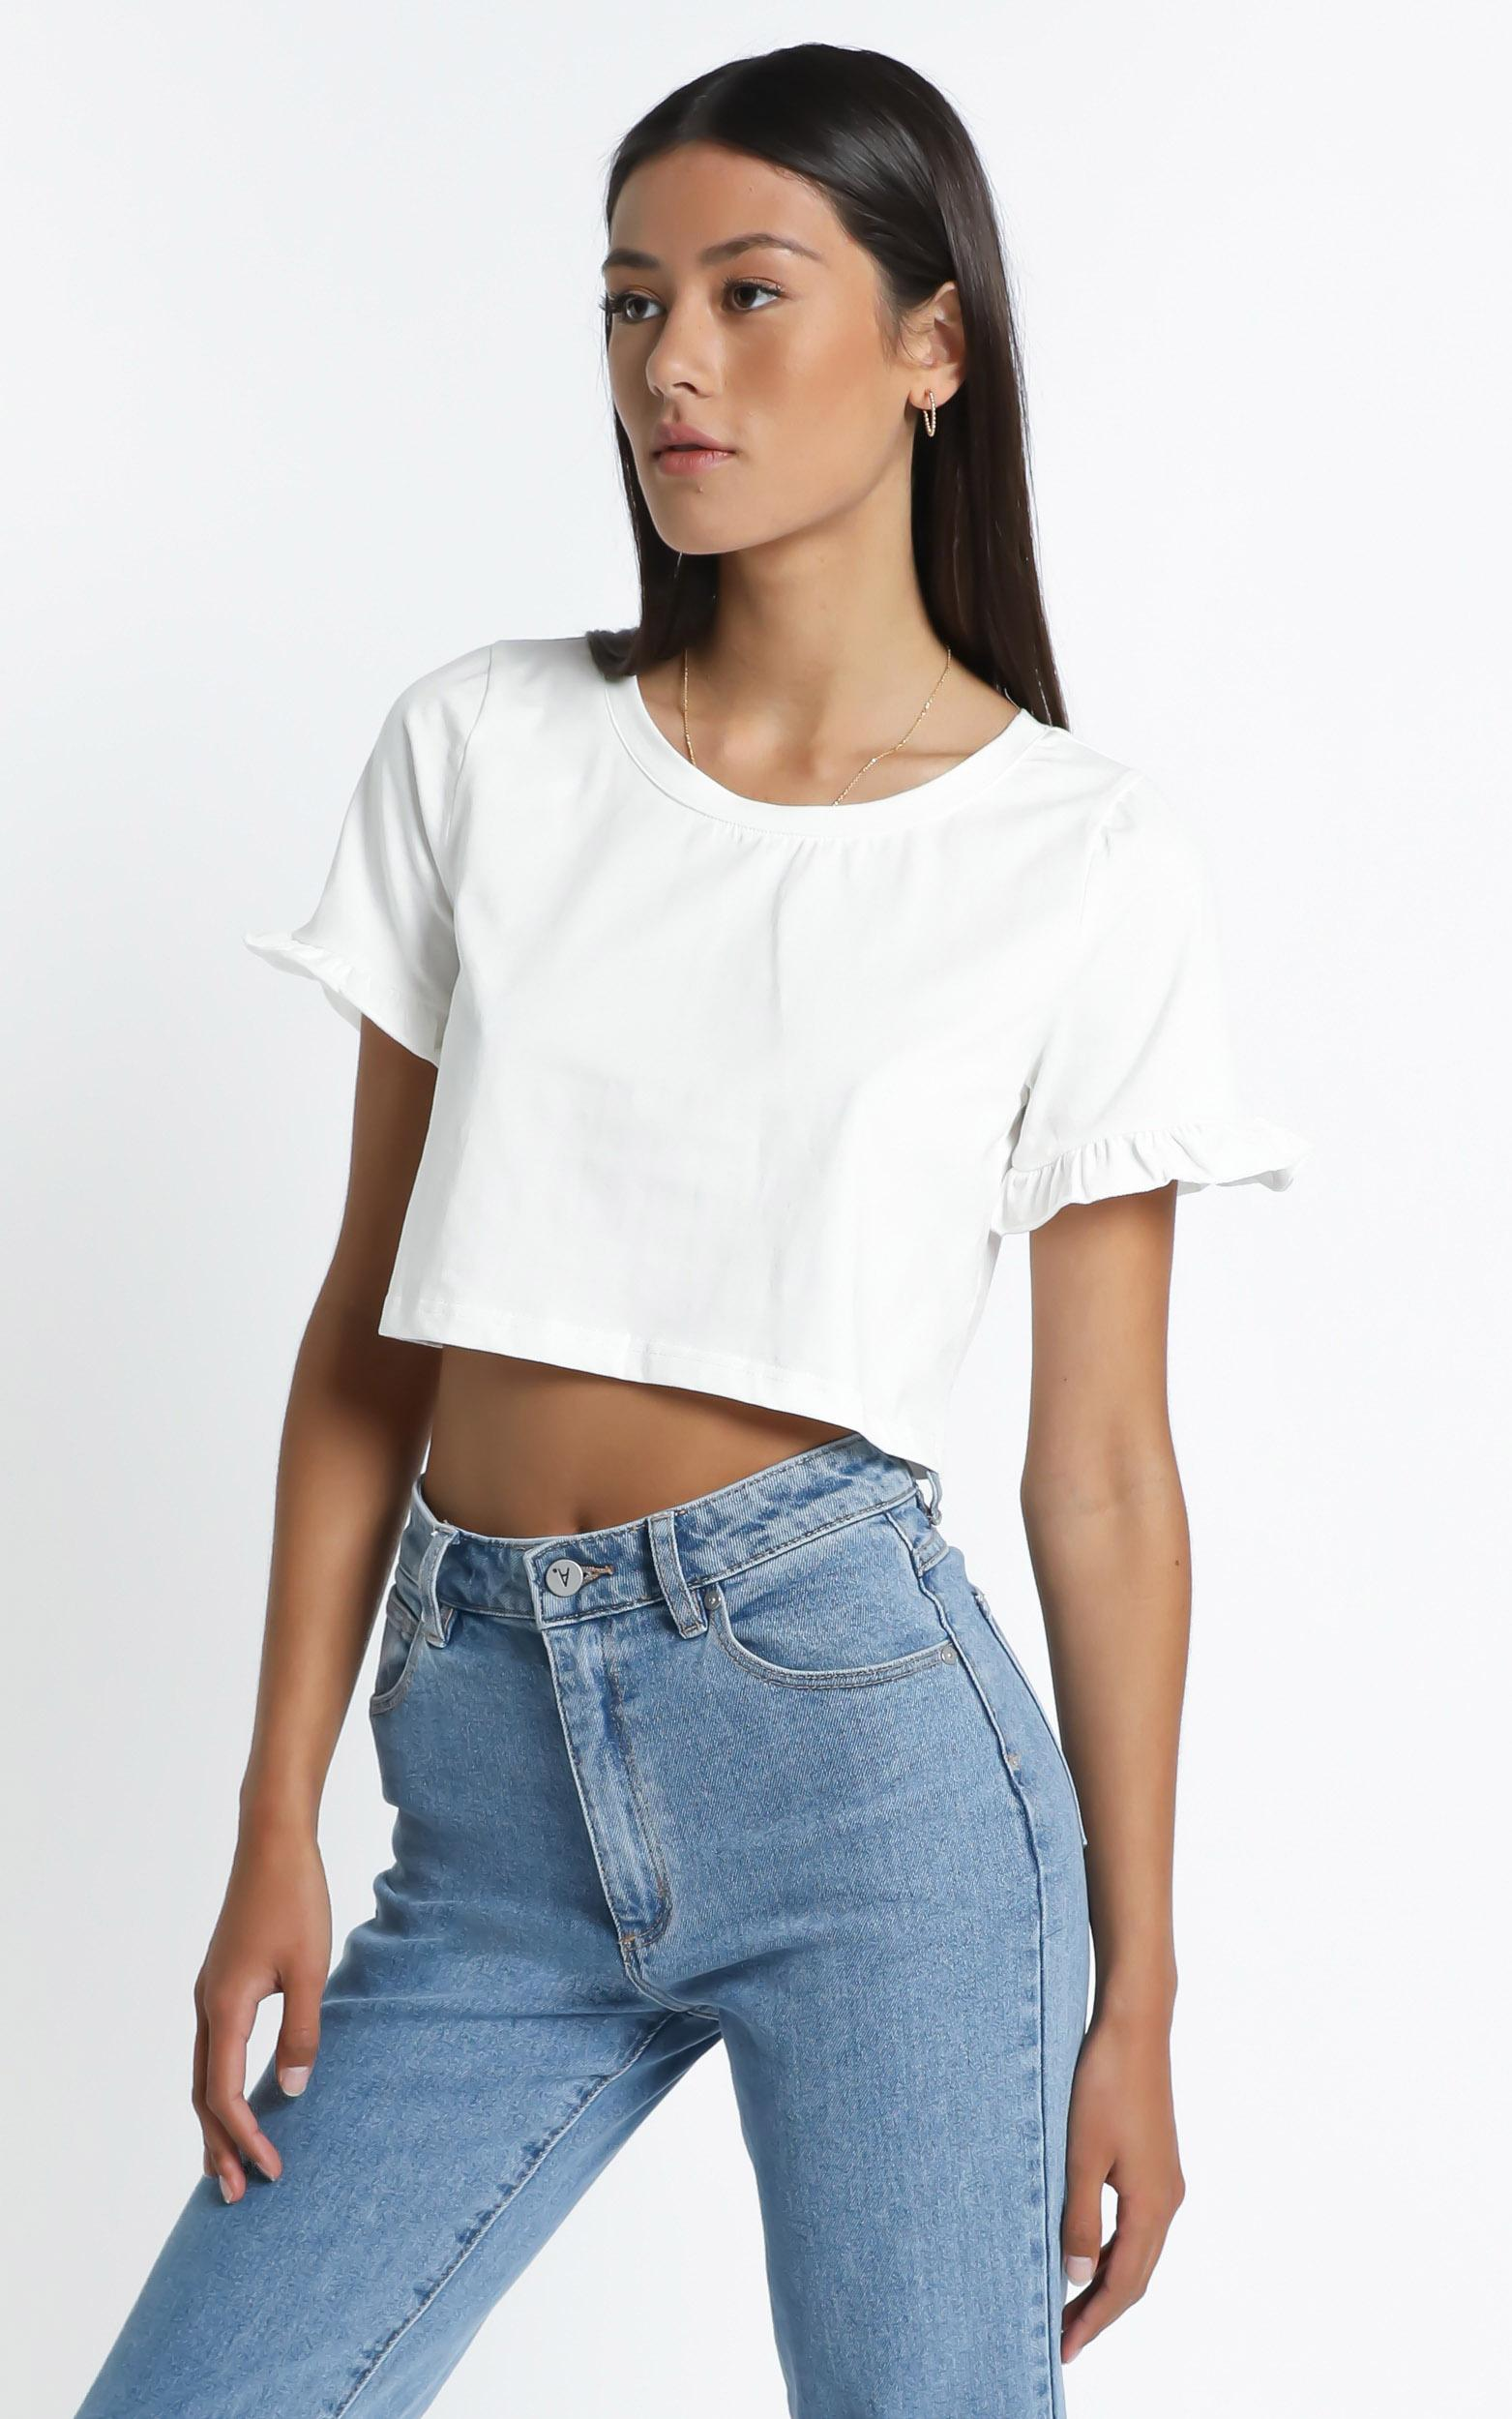 Manhattan Top in White - 6 (XS), White, hi-res image number null